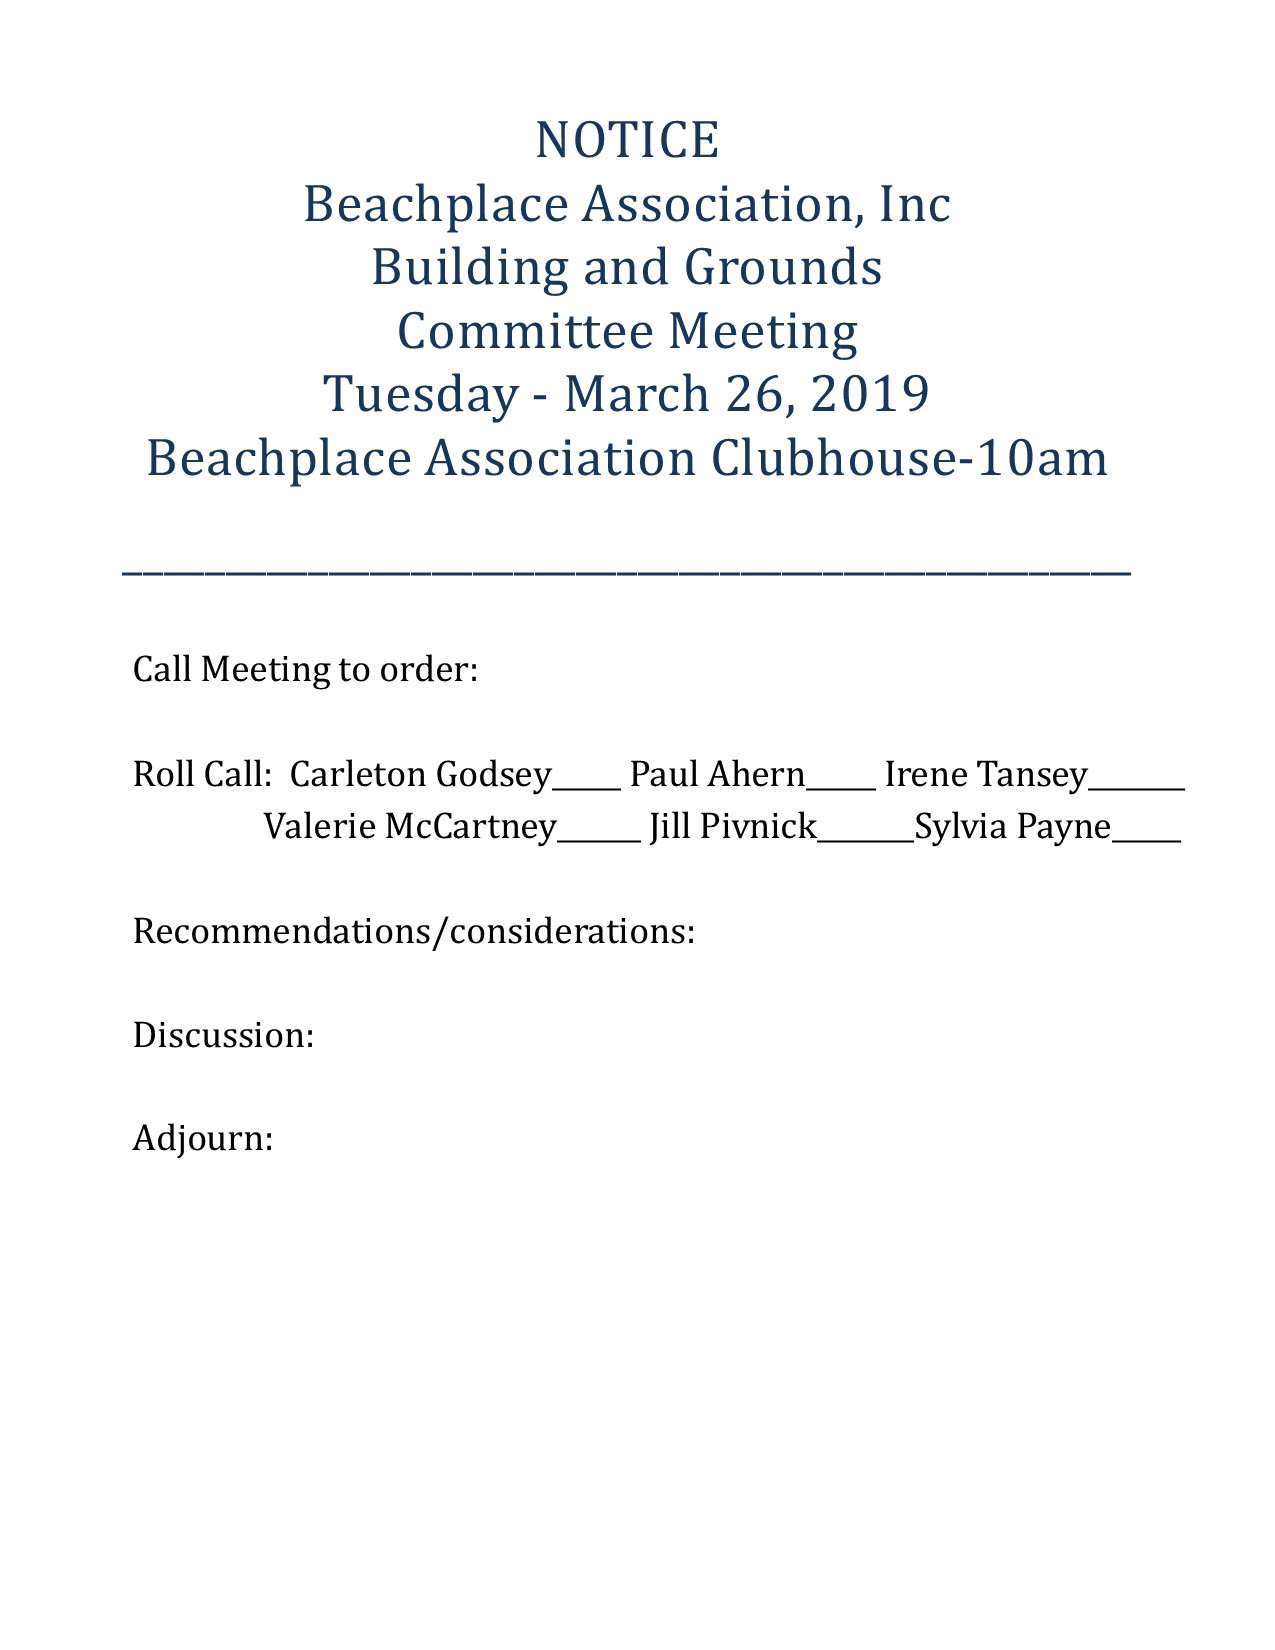 NOTICE - BUILDING & GROUNDS COMMITTEE MEETING @ The Beachplace Clubhouse